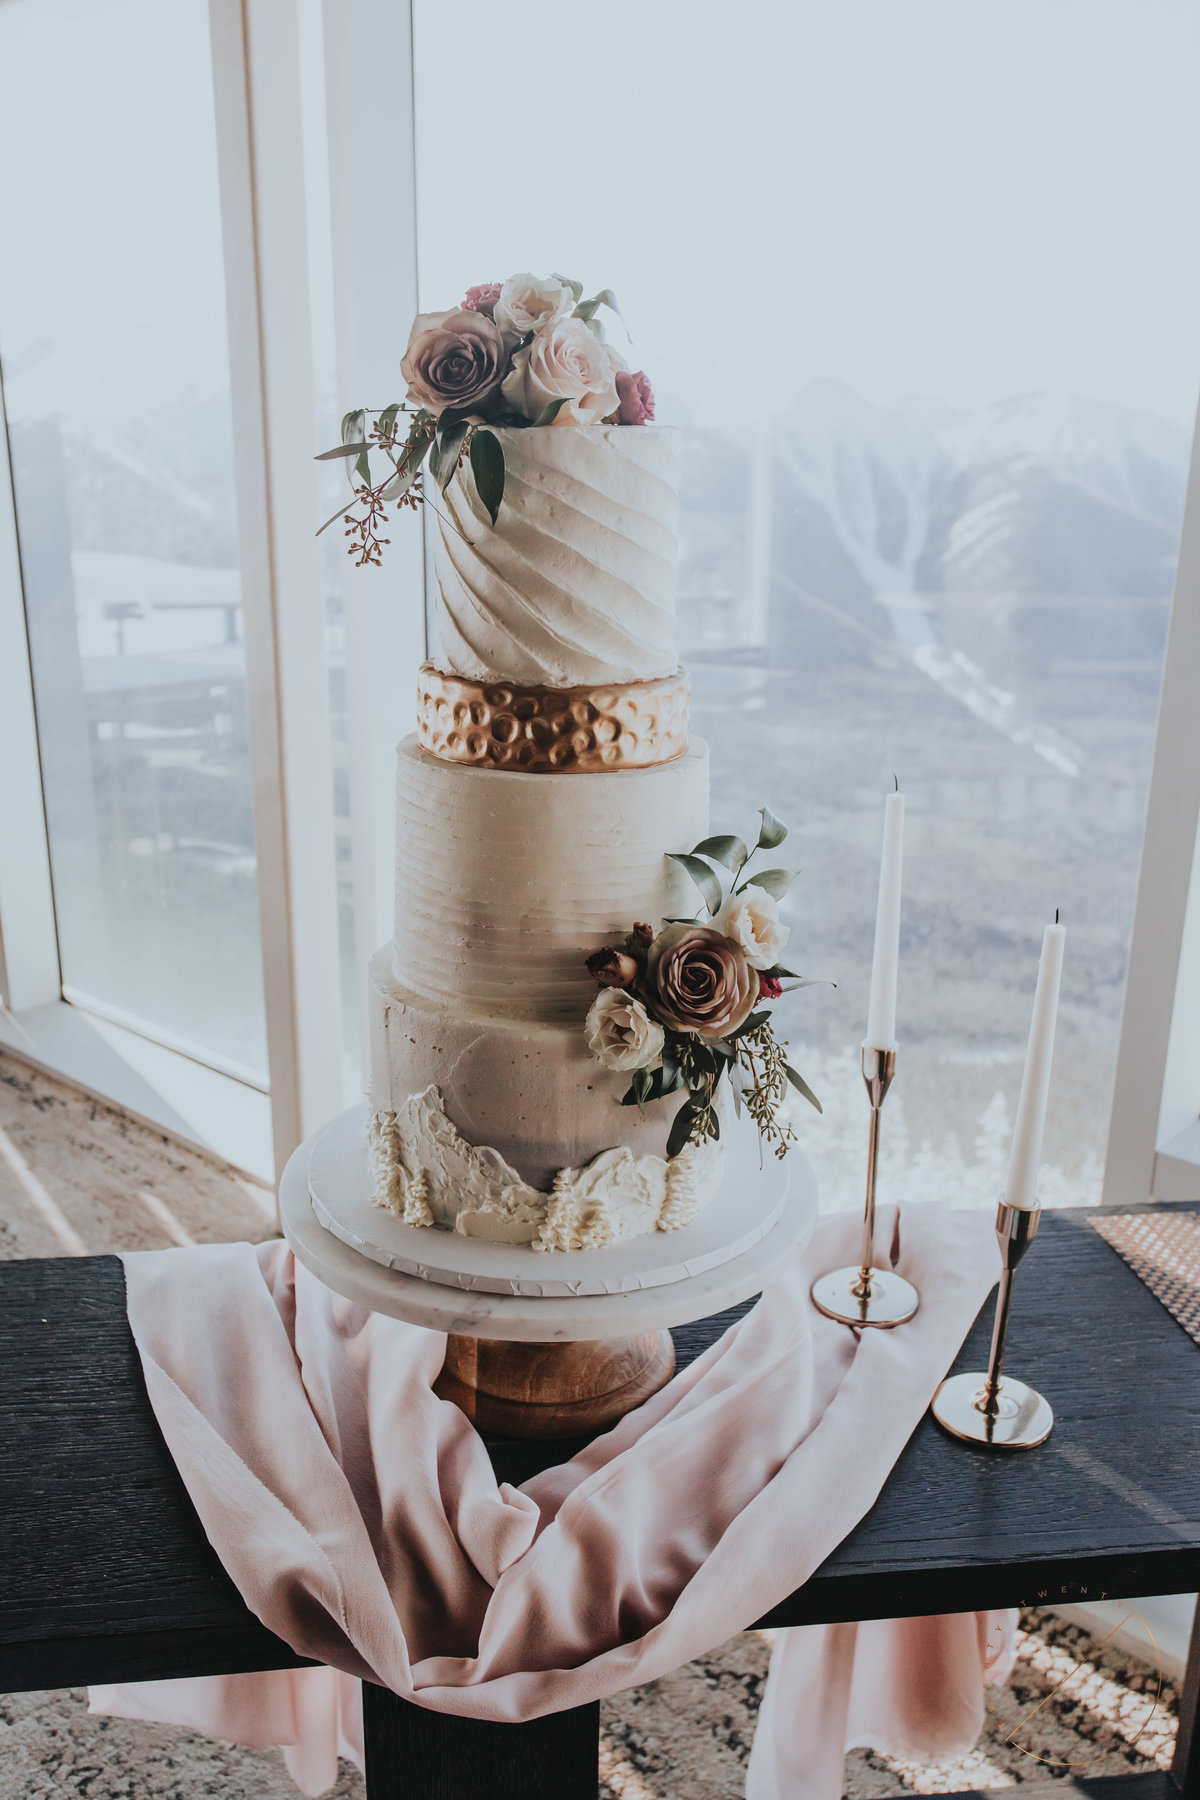 stunning mountain themed cake capture by Twenty Twenty Photography in Sky Bistro, cake designed by Bake My Day based out of Calgary